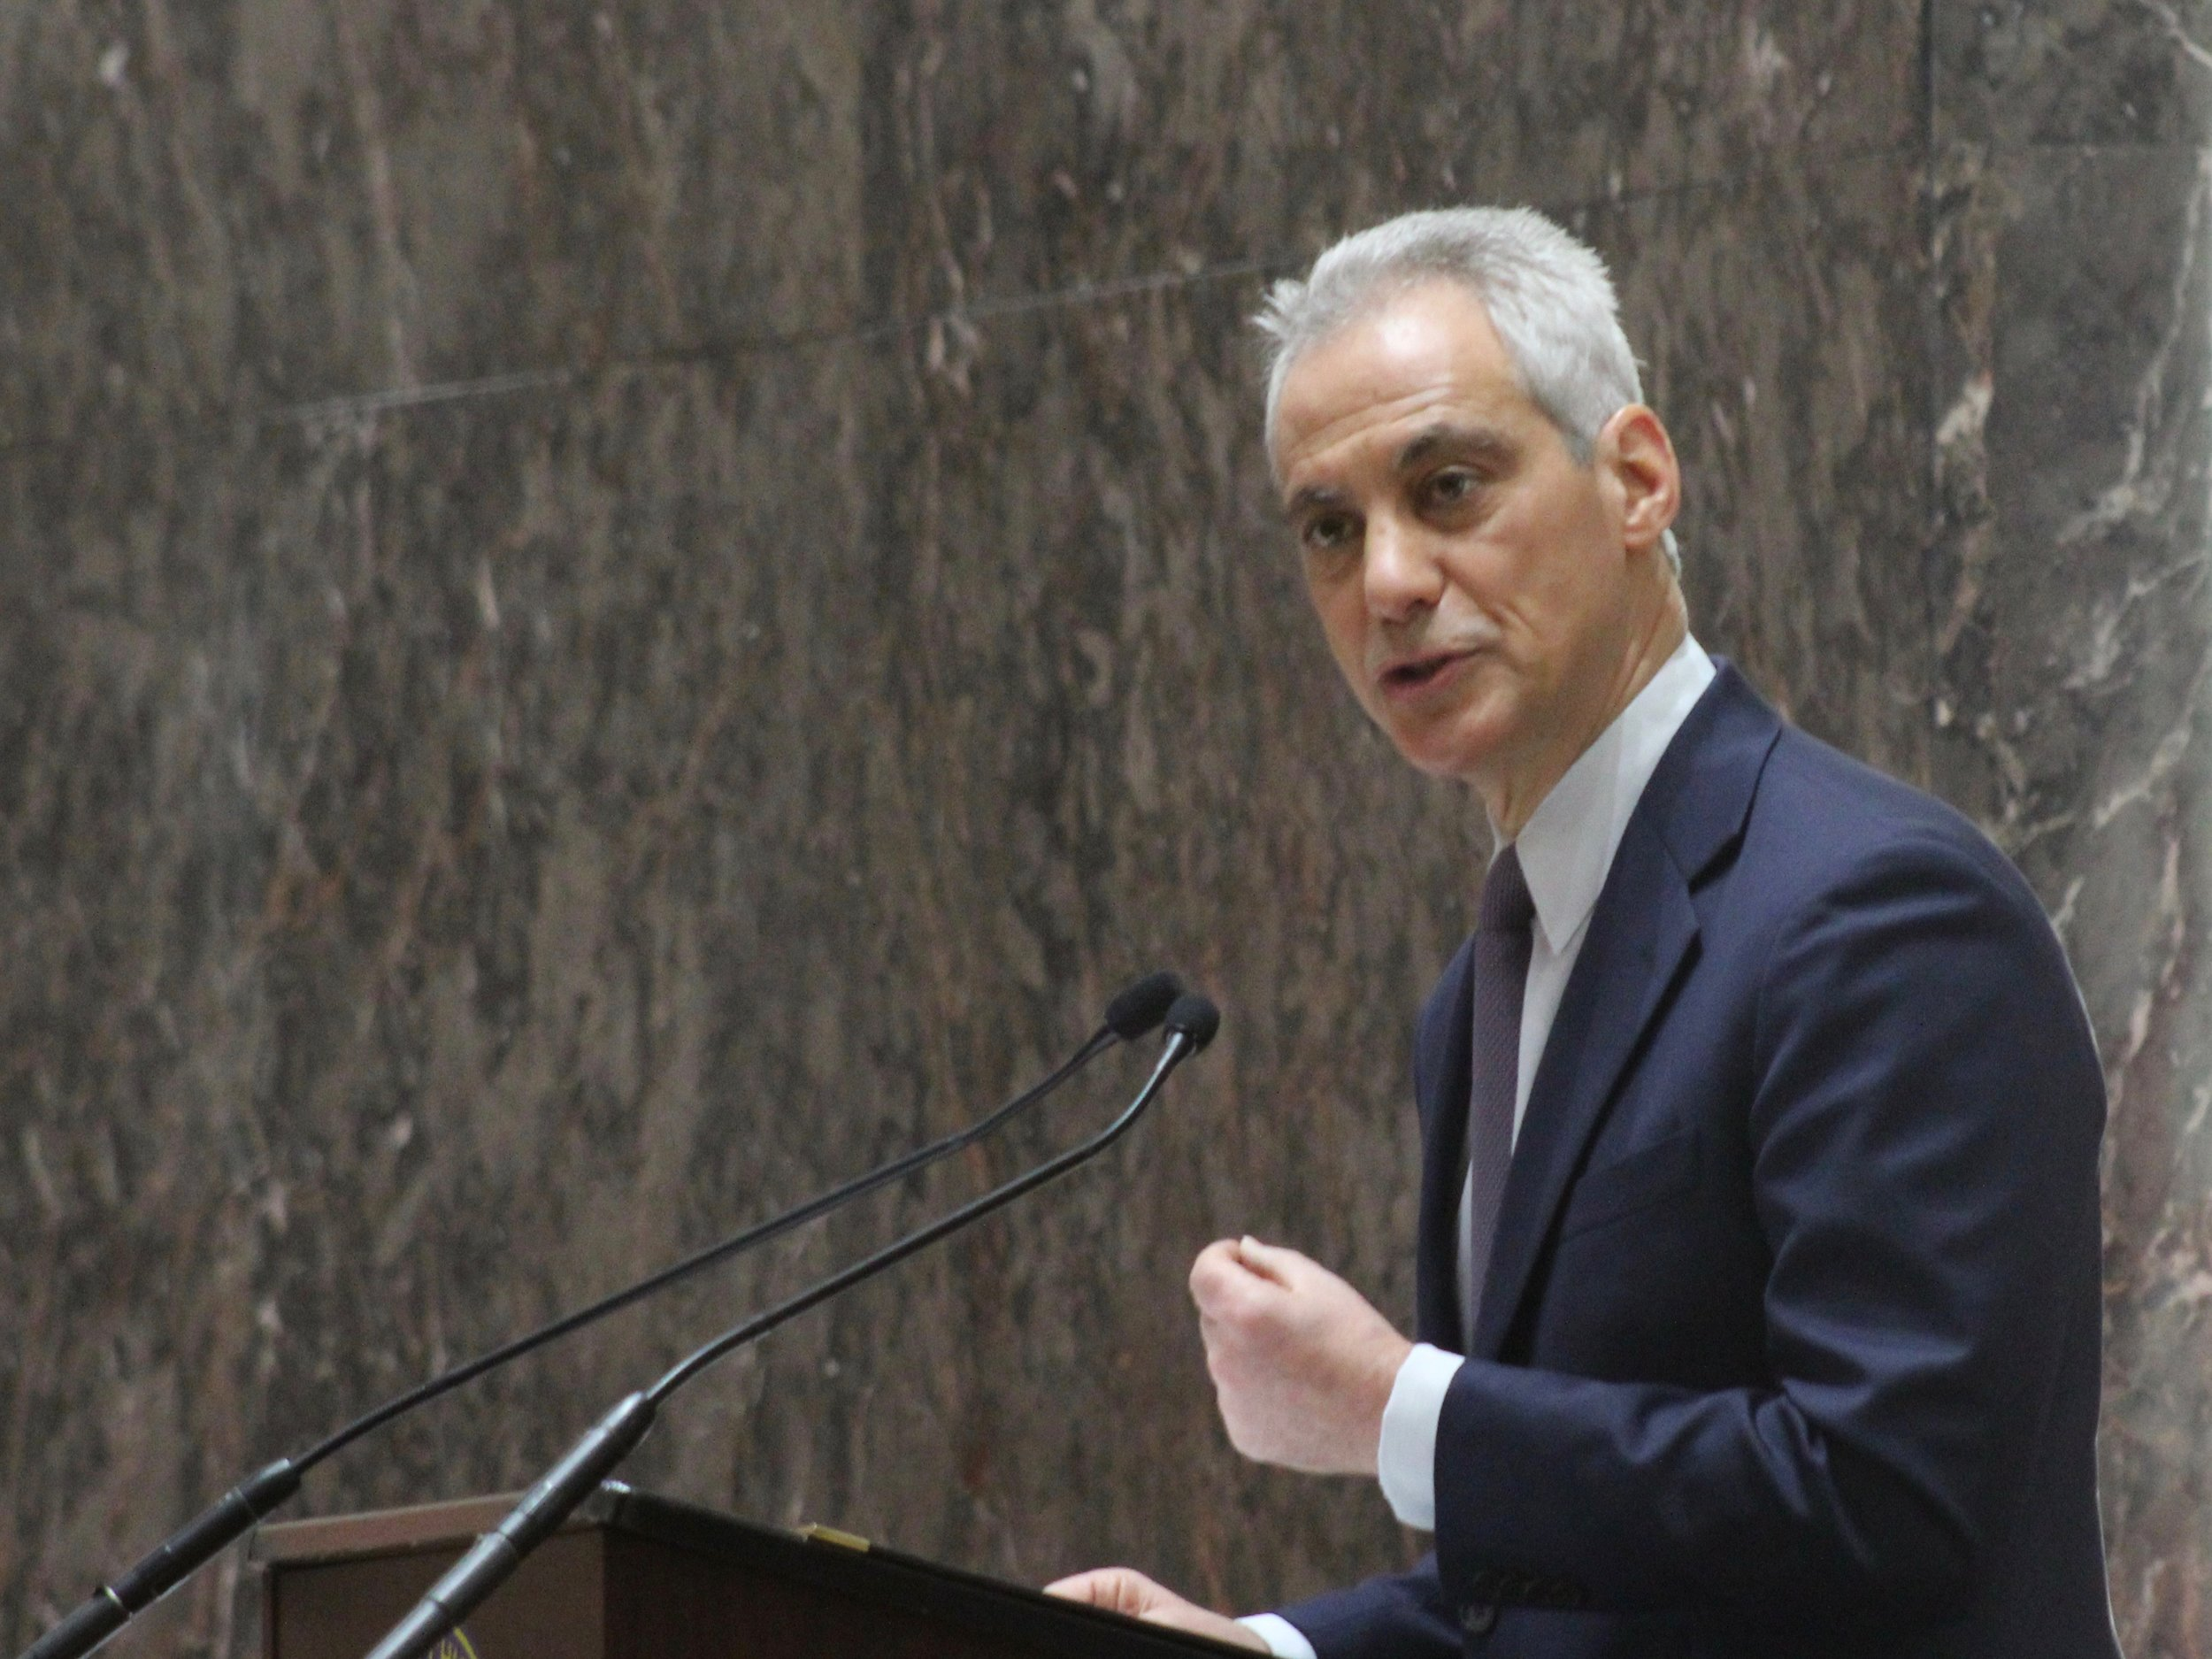 Mayor Rahm Emanuel addresses the Chicago City Council on pension fixes including amending the state constitution to allow a progressive income tax and legalizing marijuana. (One Illinois/Ted Cox)